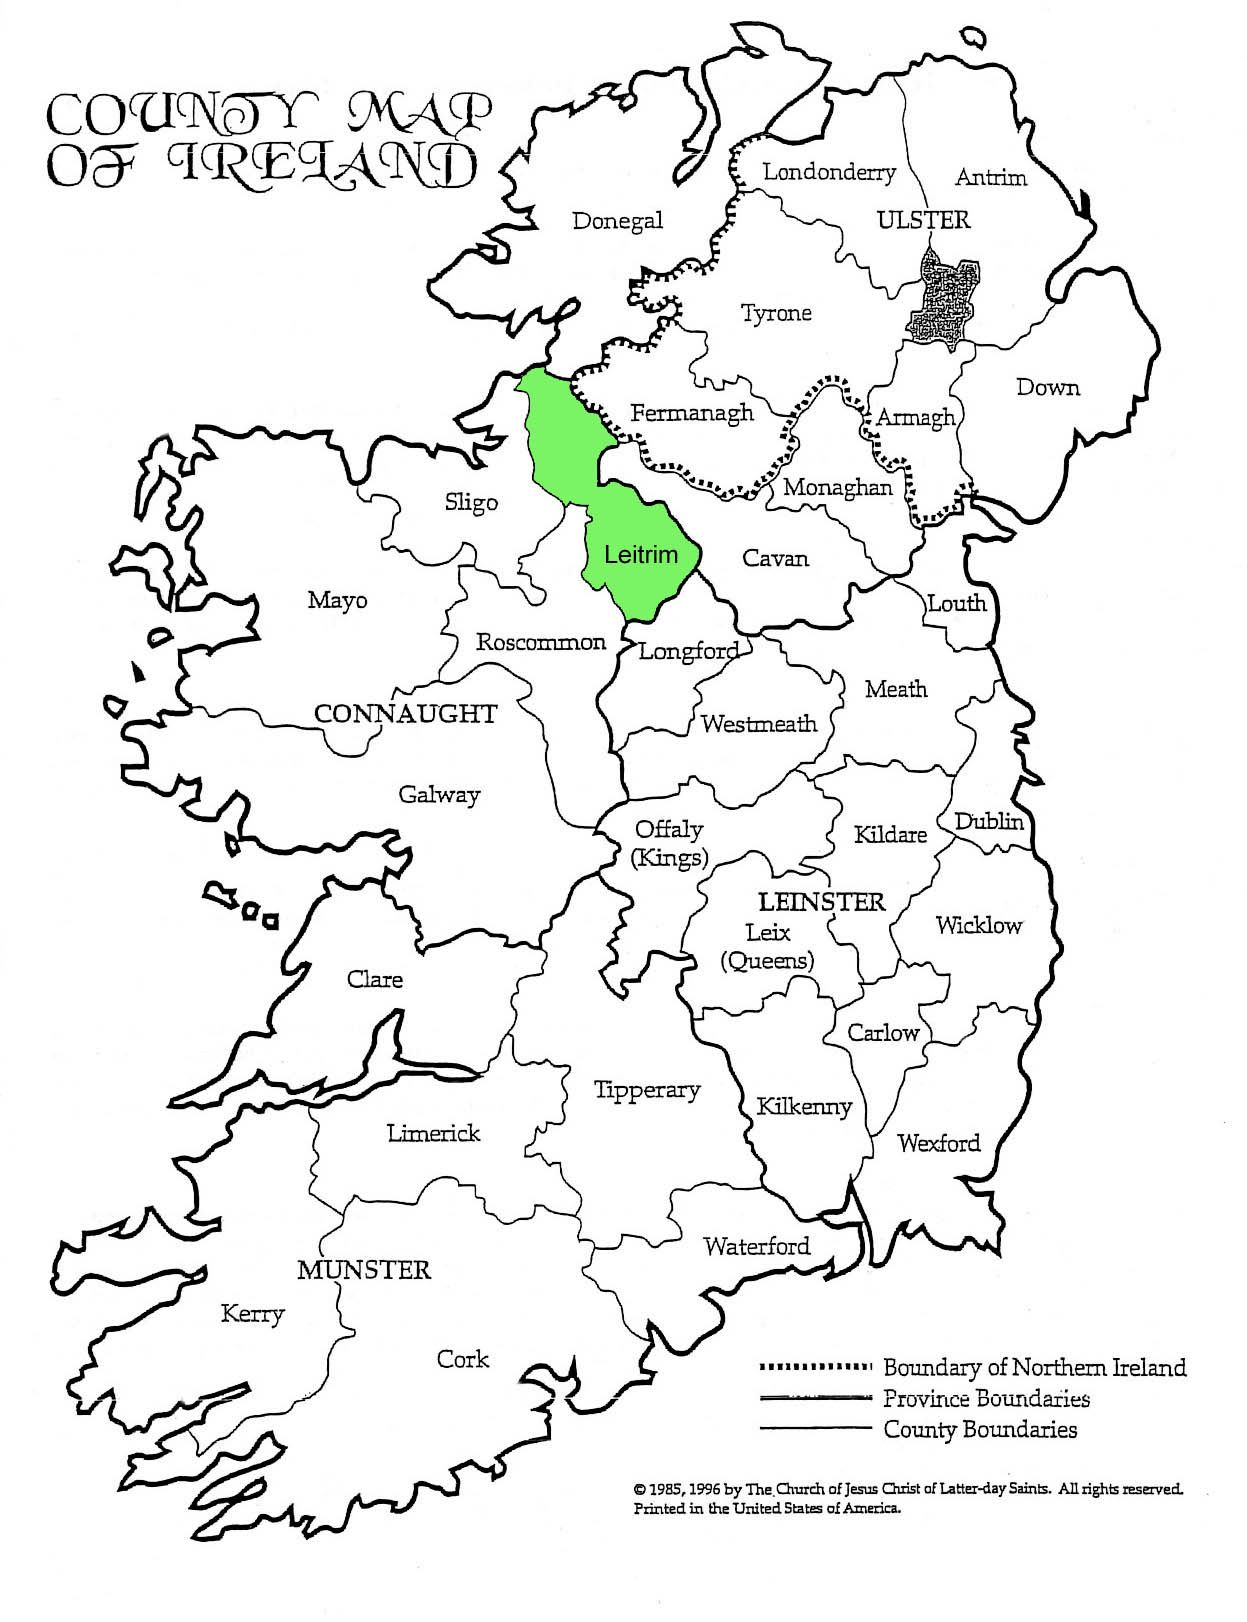 Map Of Ireland Cavan.County Leitrim Ireland Research Ireland County Cork Ireland